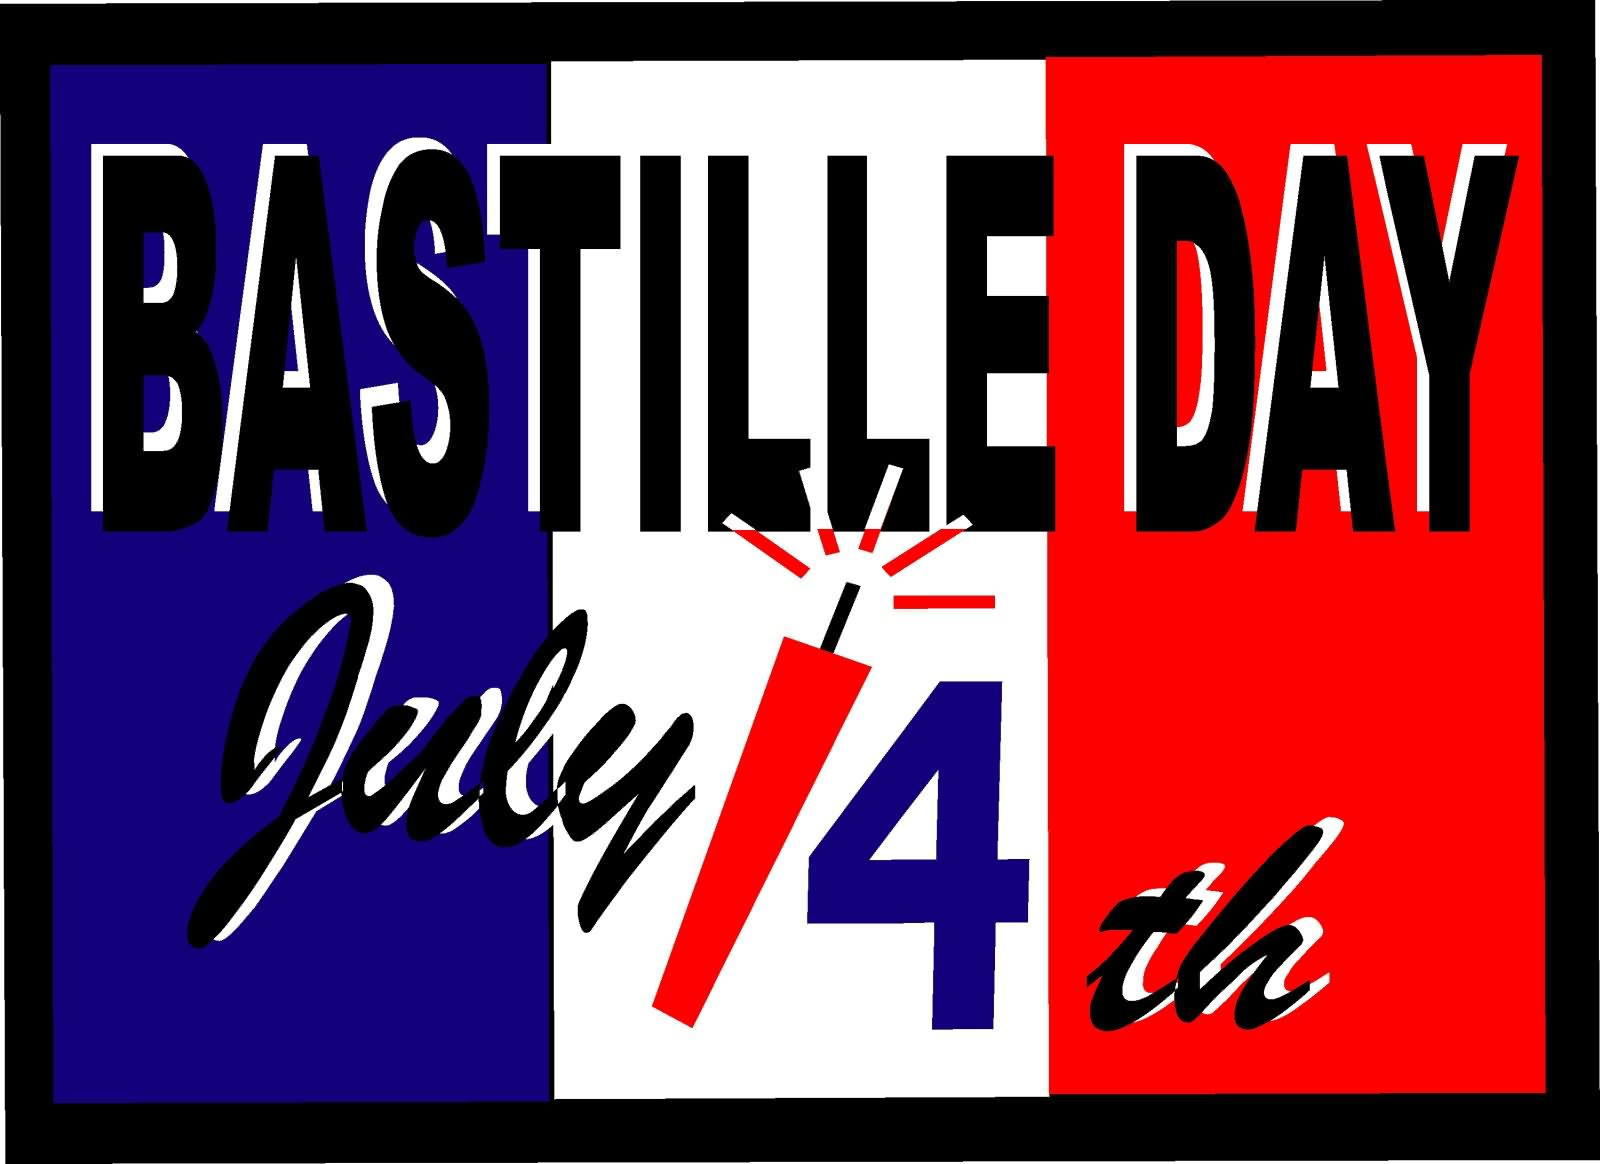 Bastille Day July 14th Wishes Image